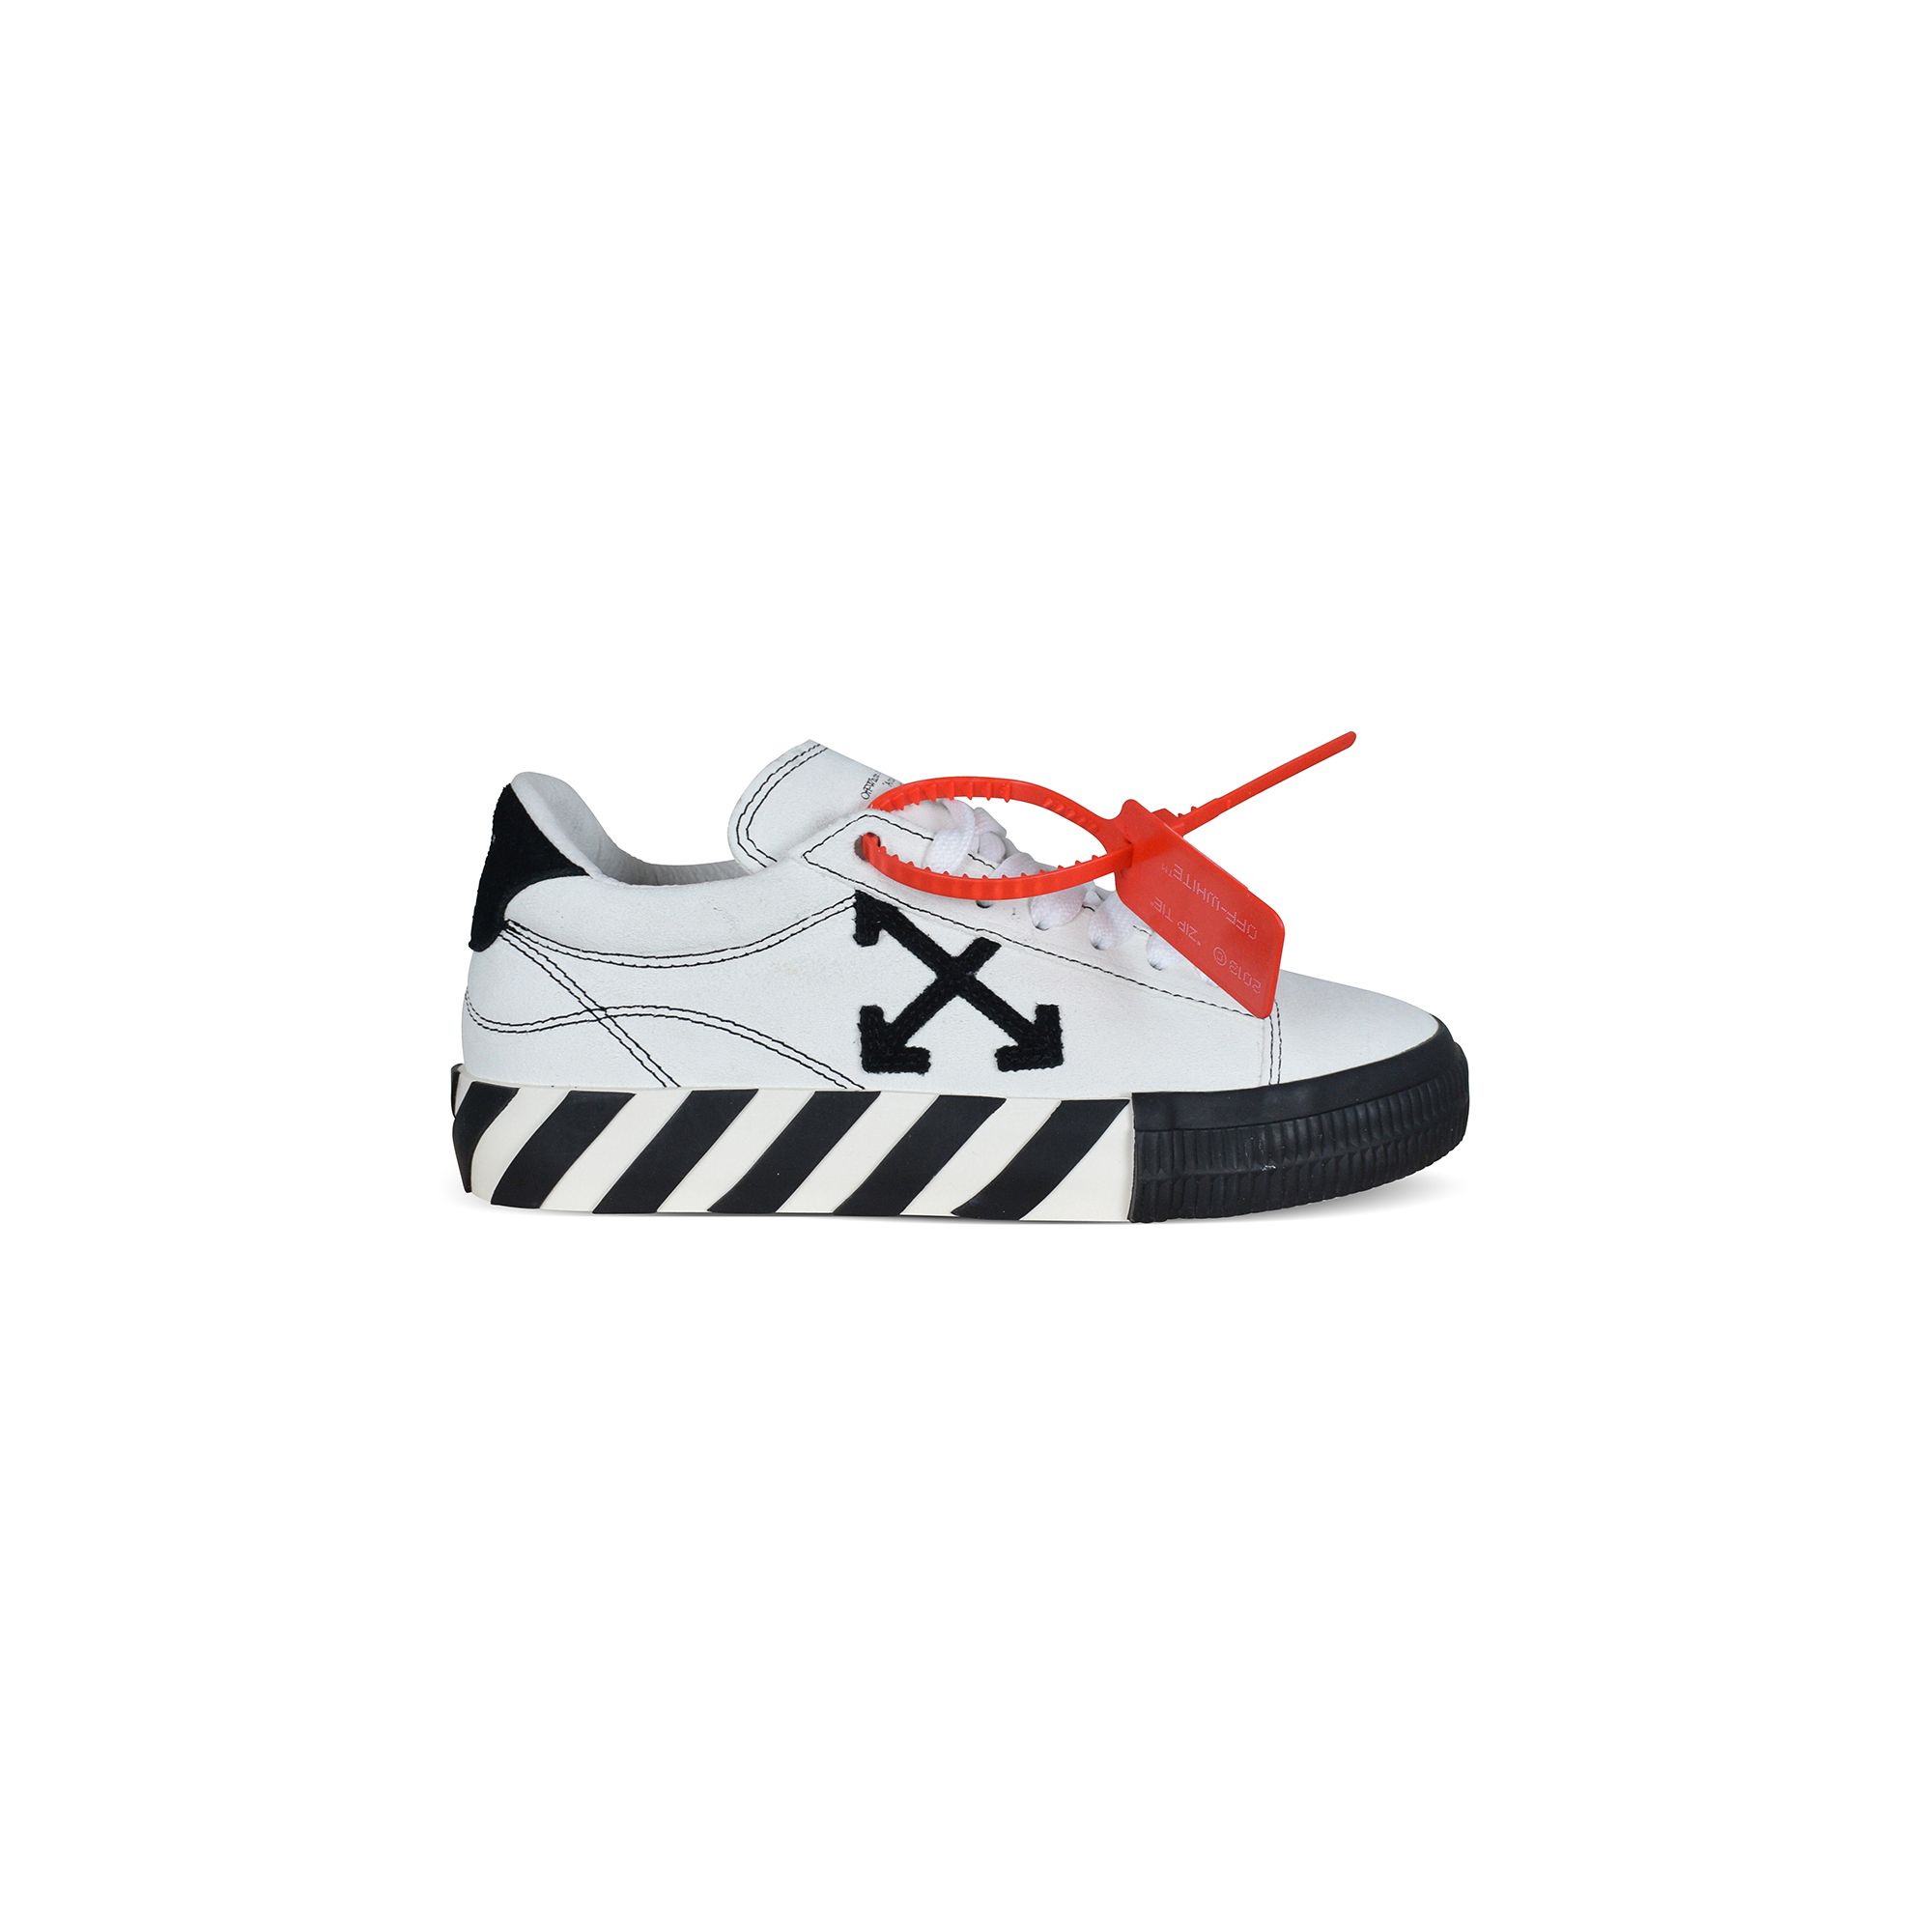 Low Vulcanized Off-White sneakers in white suede with black stitching.